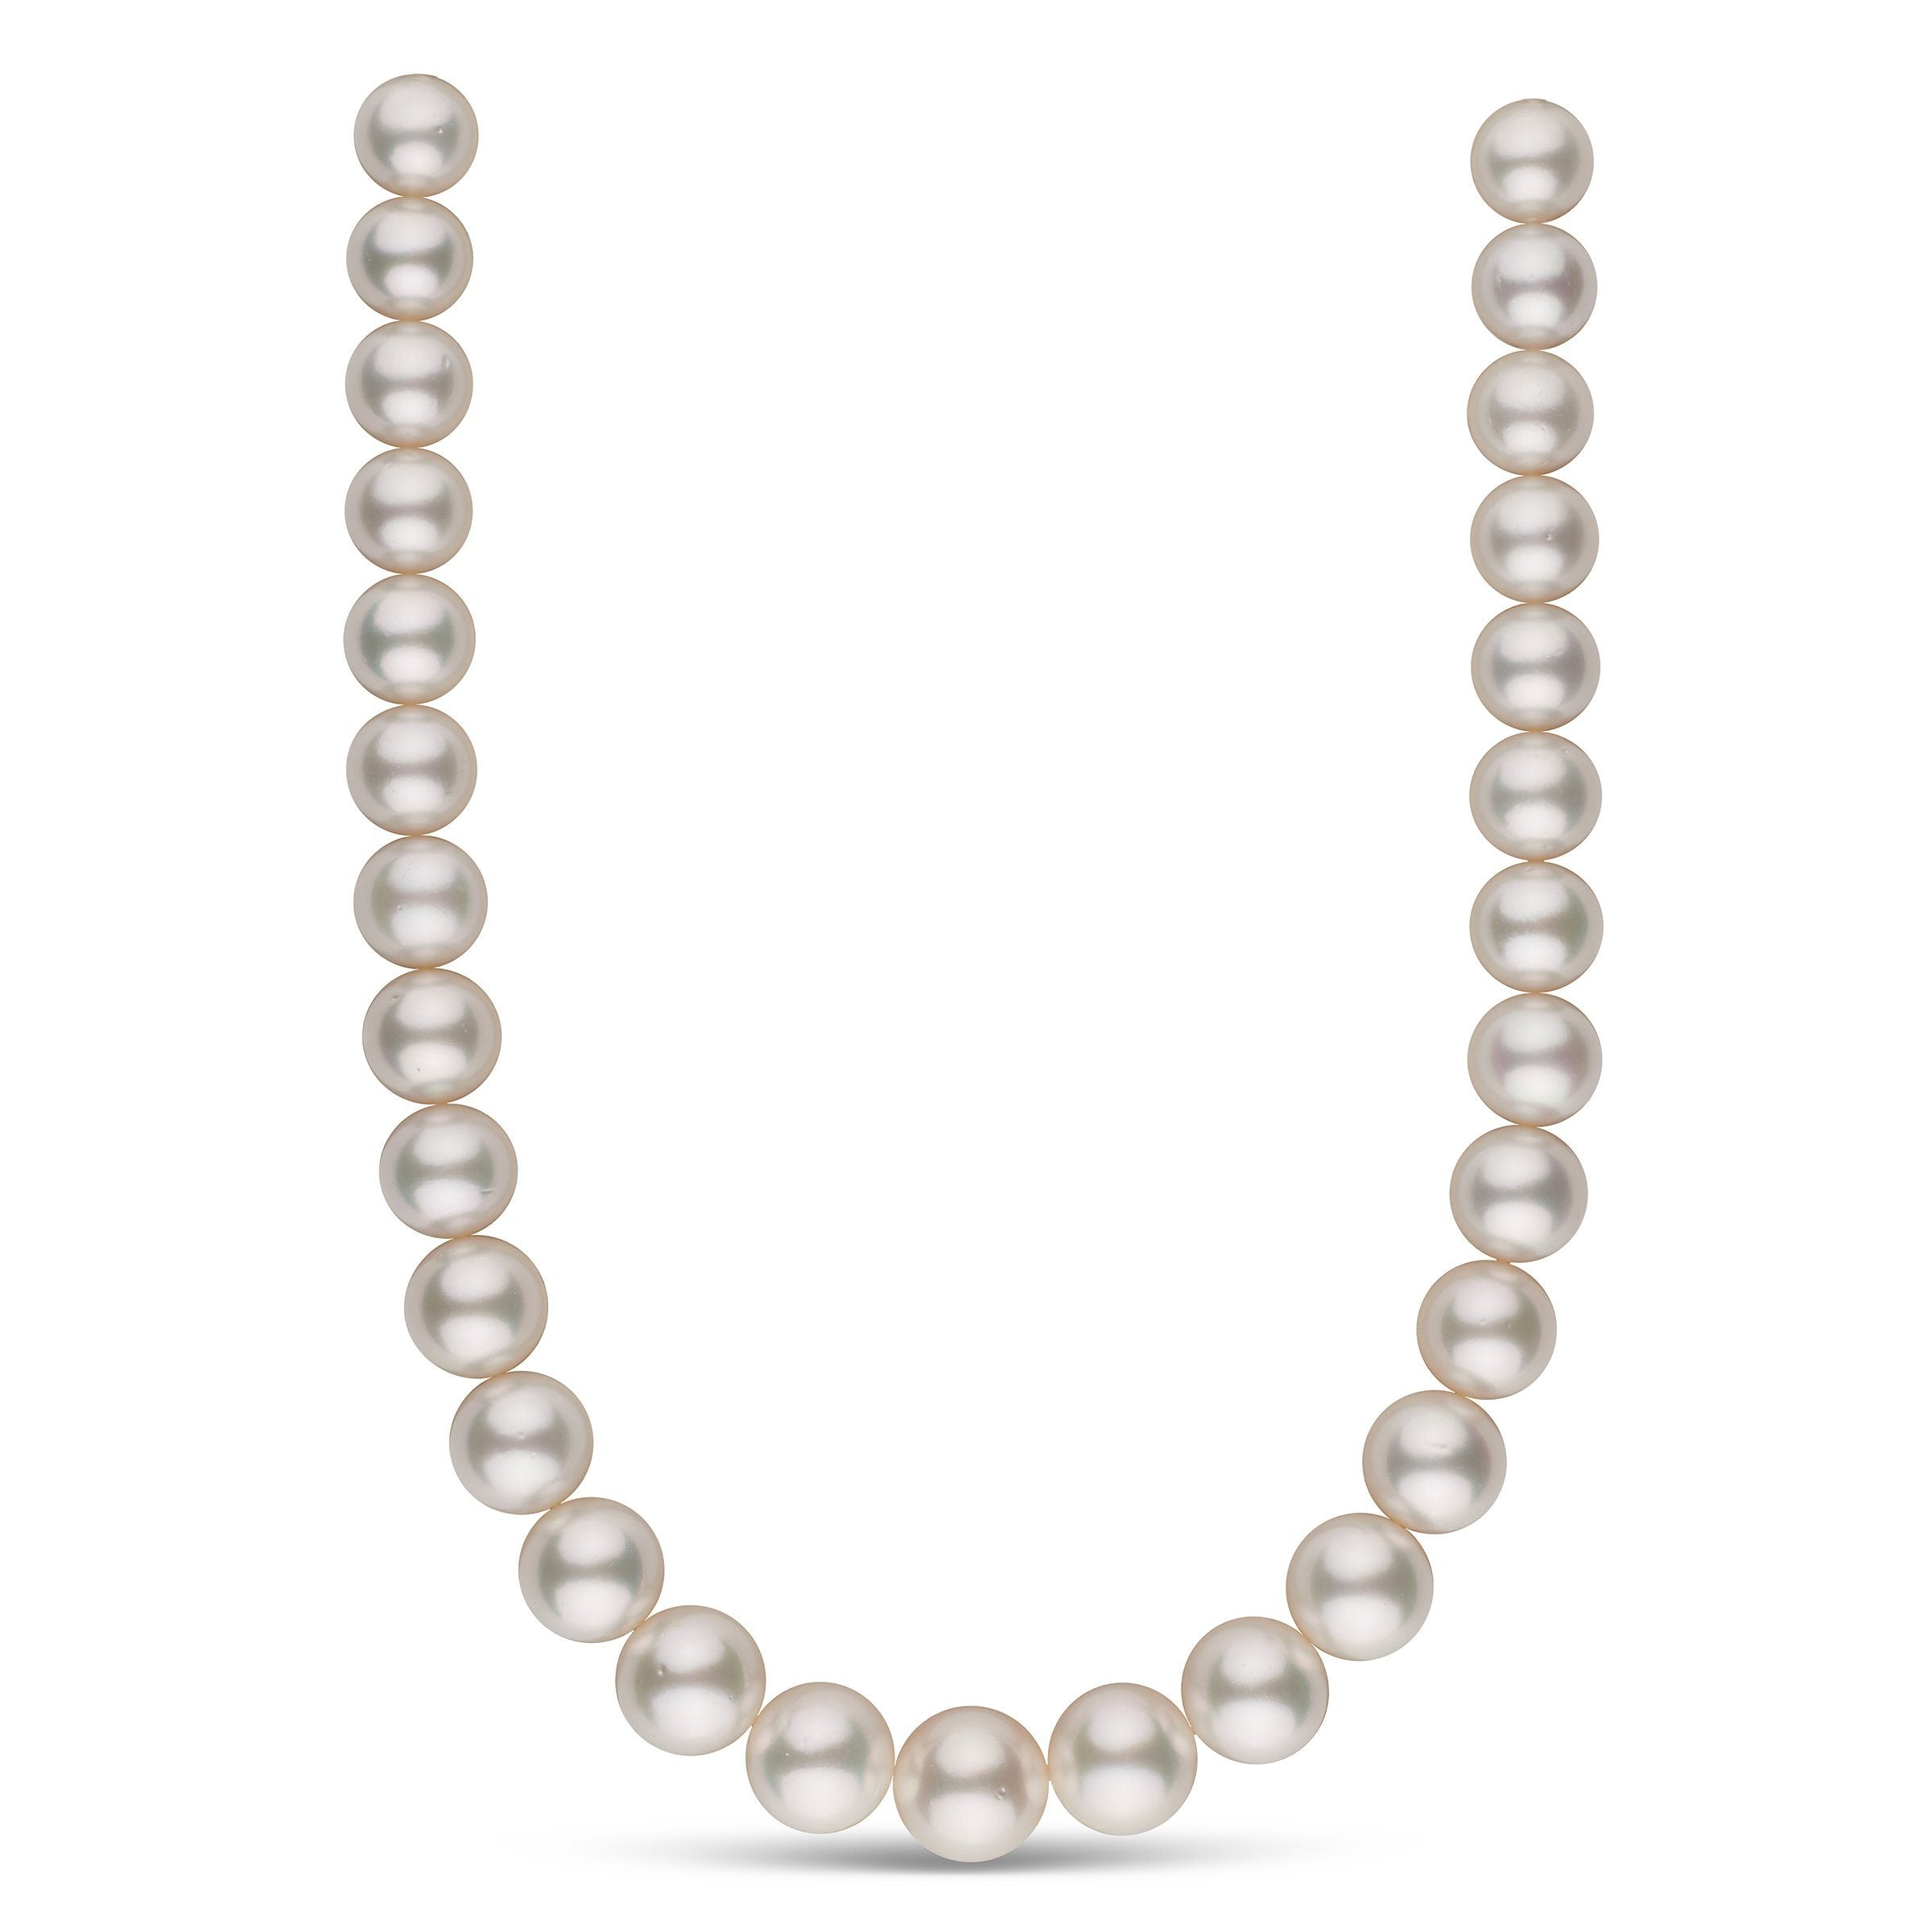 The Nessun Dorma White South Sea Pearl Necklace